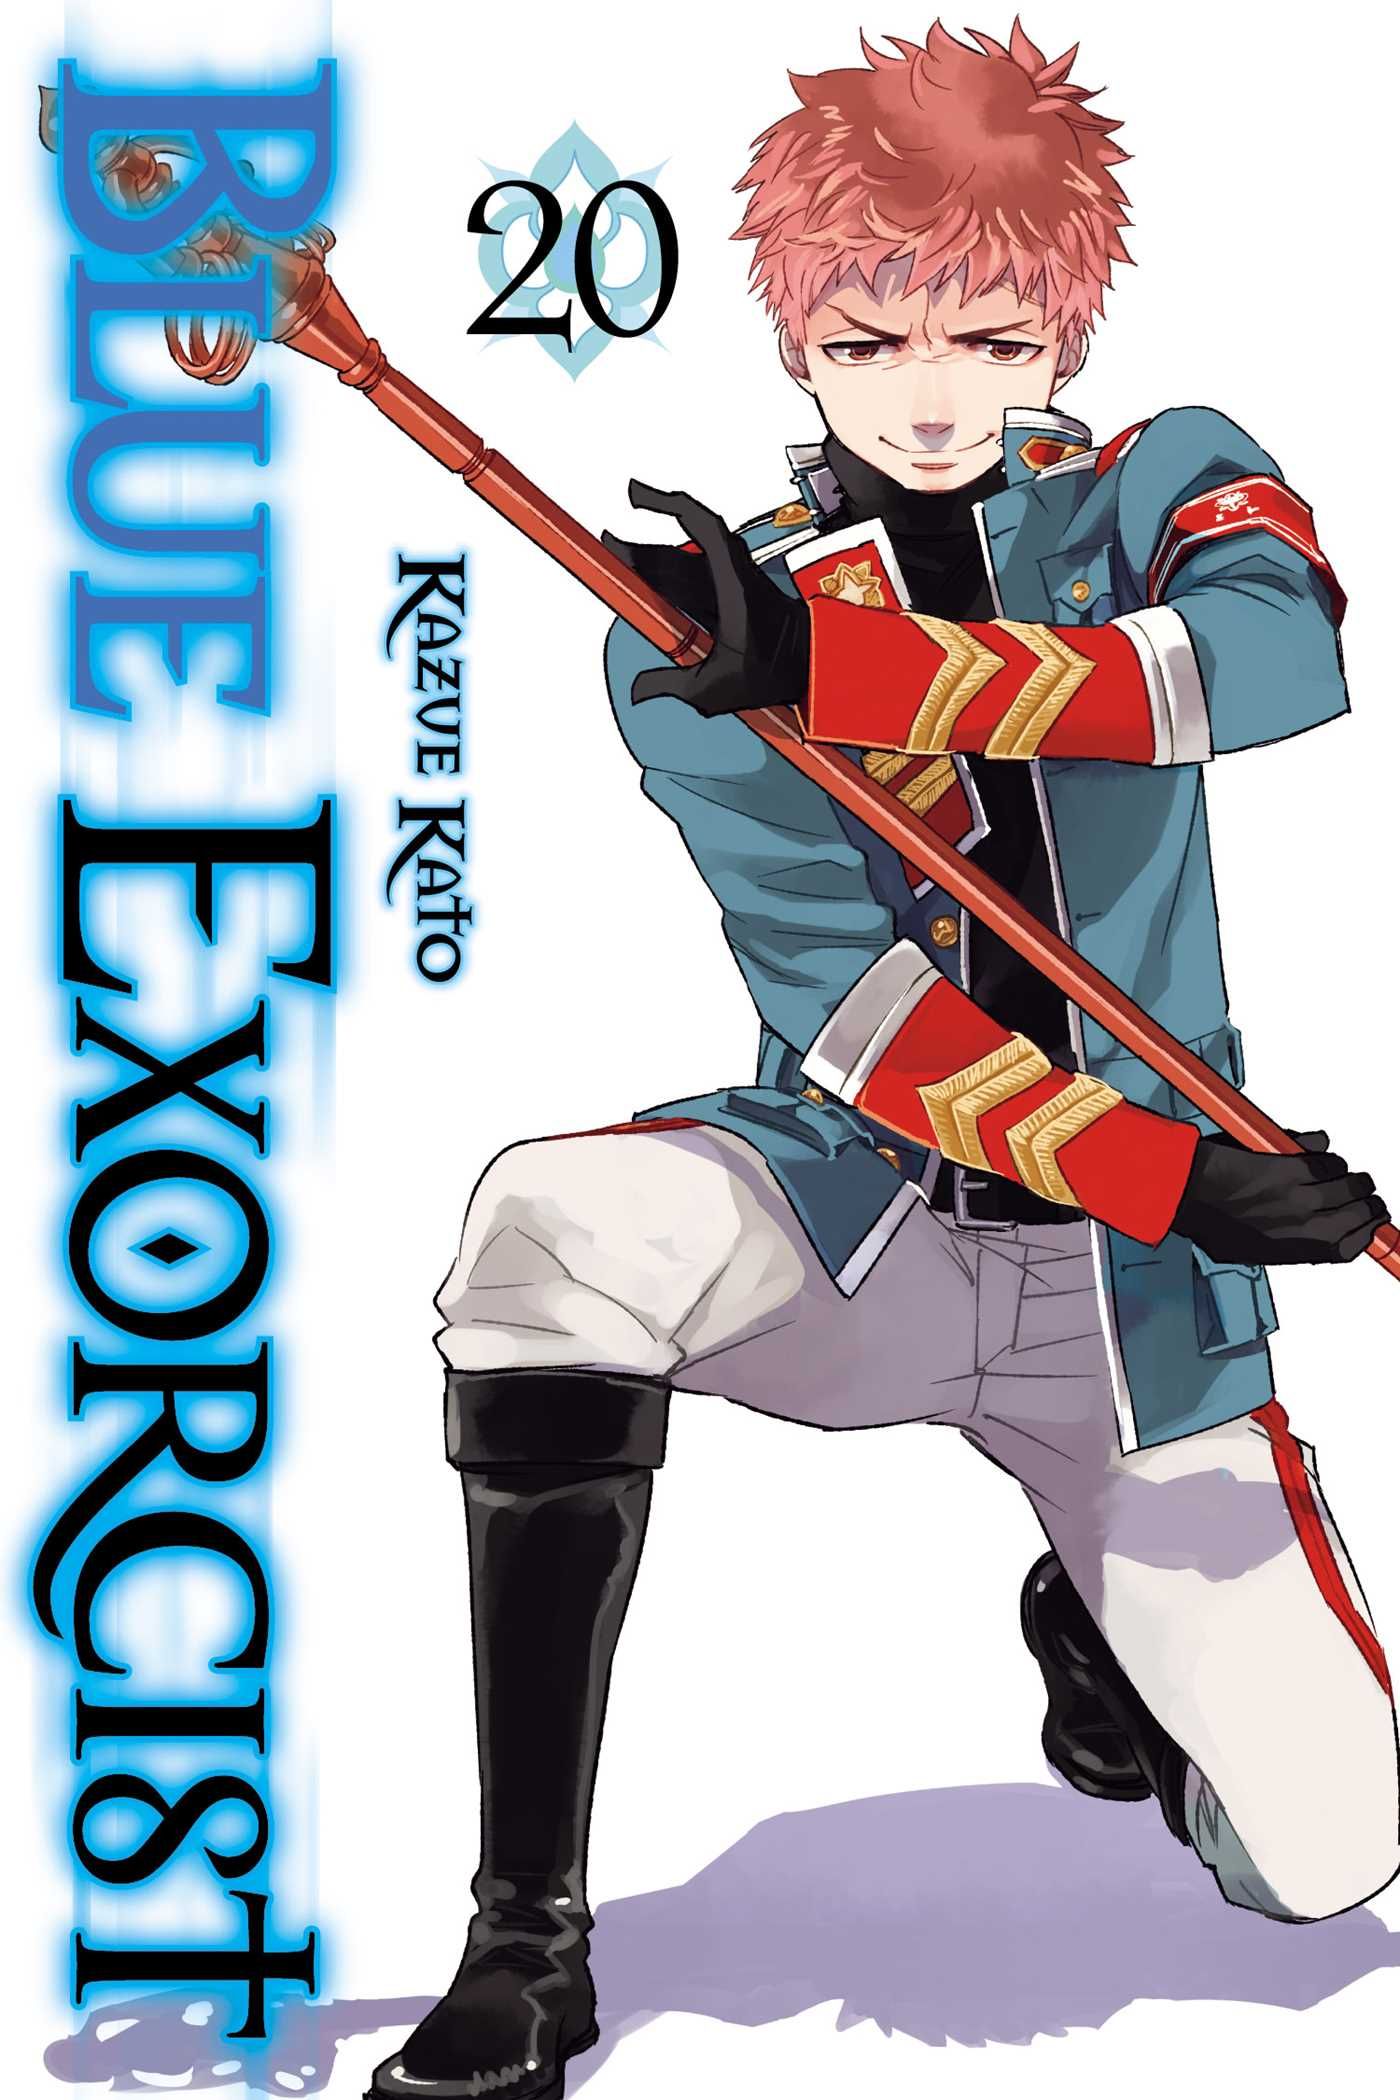 Blue Exorcist, Vol. 20 | Book by Kazue Kato | Official Publisher Page | Simon & Schuster